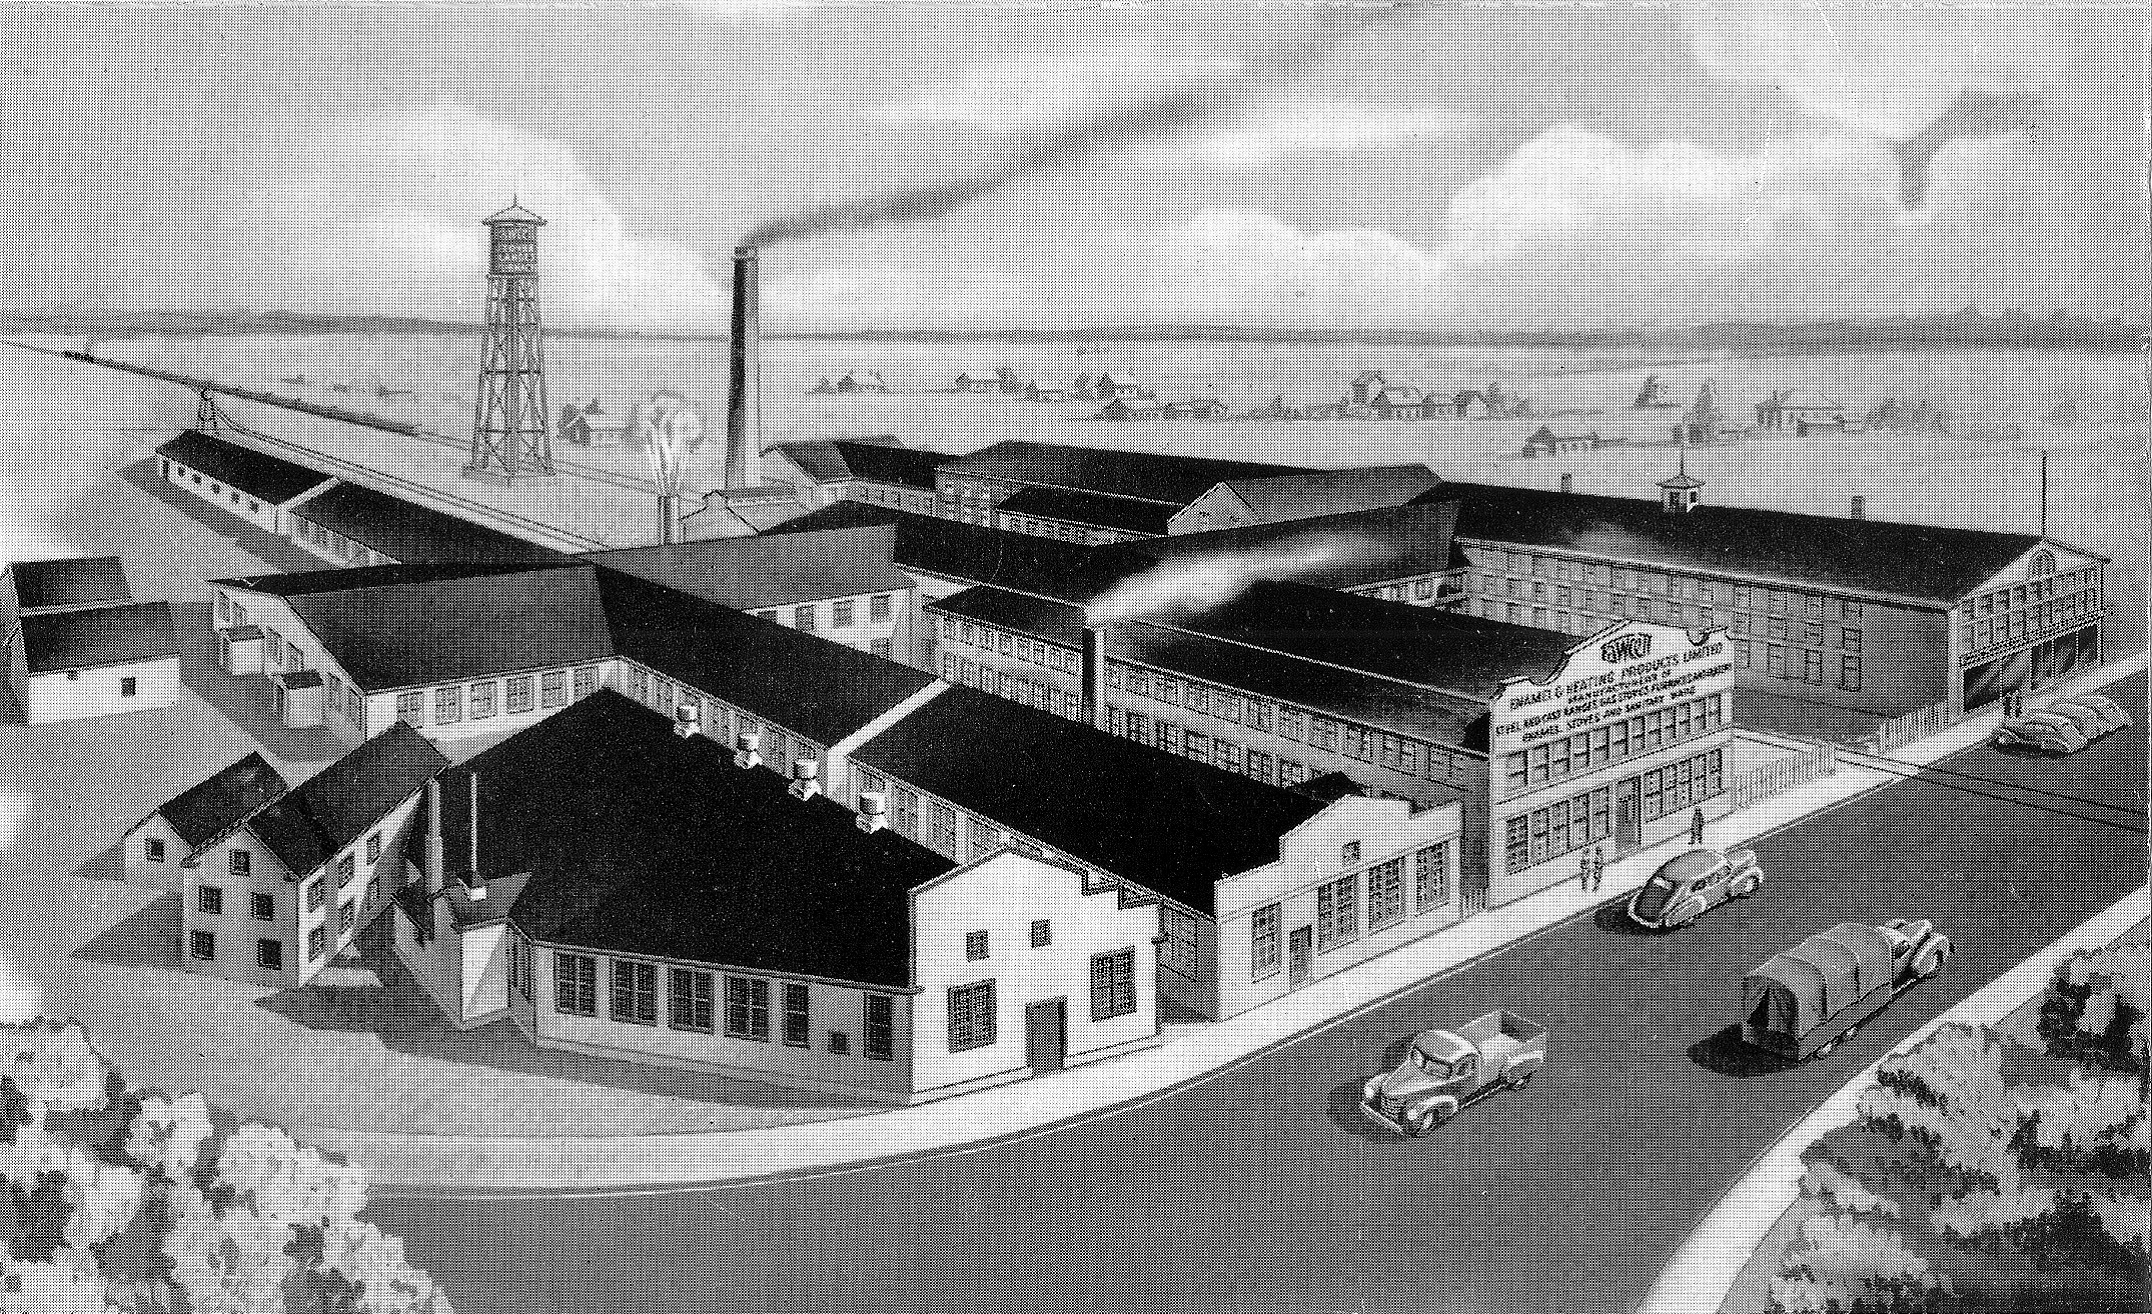 Sketch of Enamel and Heating Foundry, King Street, Sackville, NB